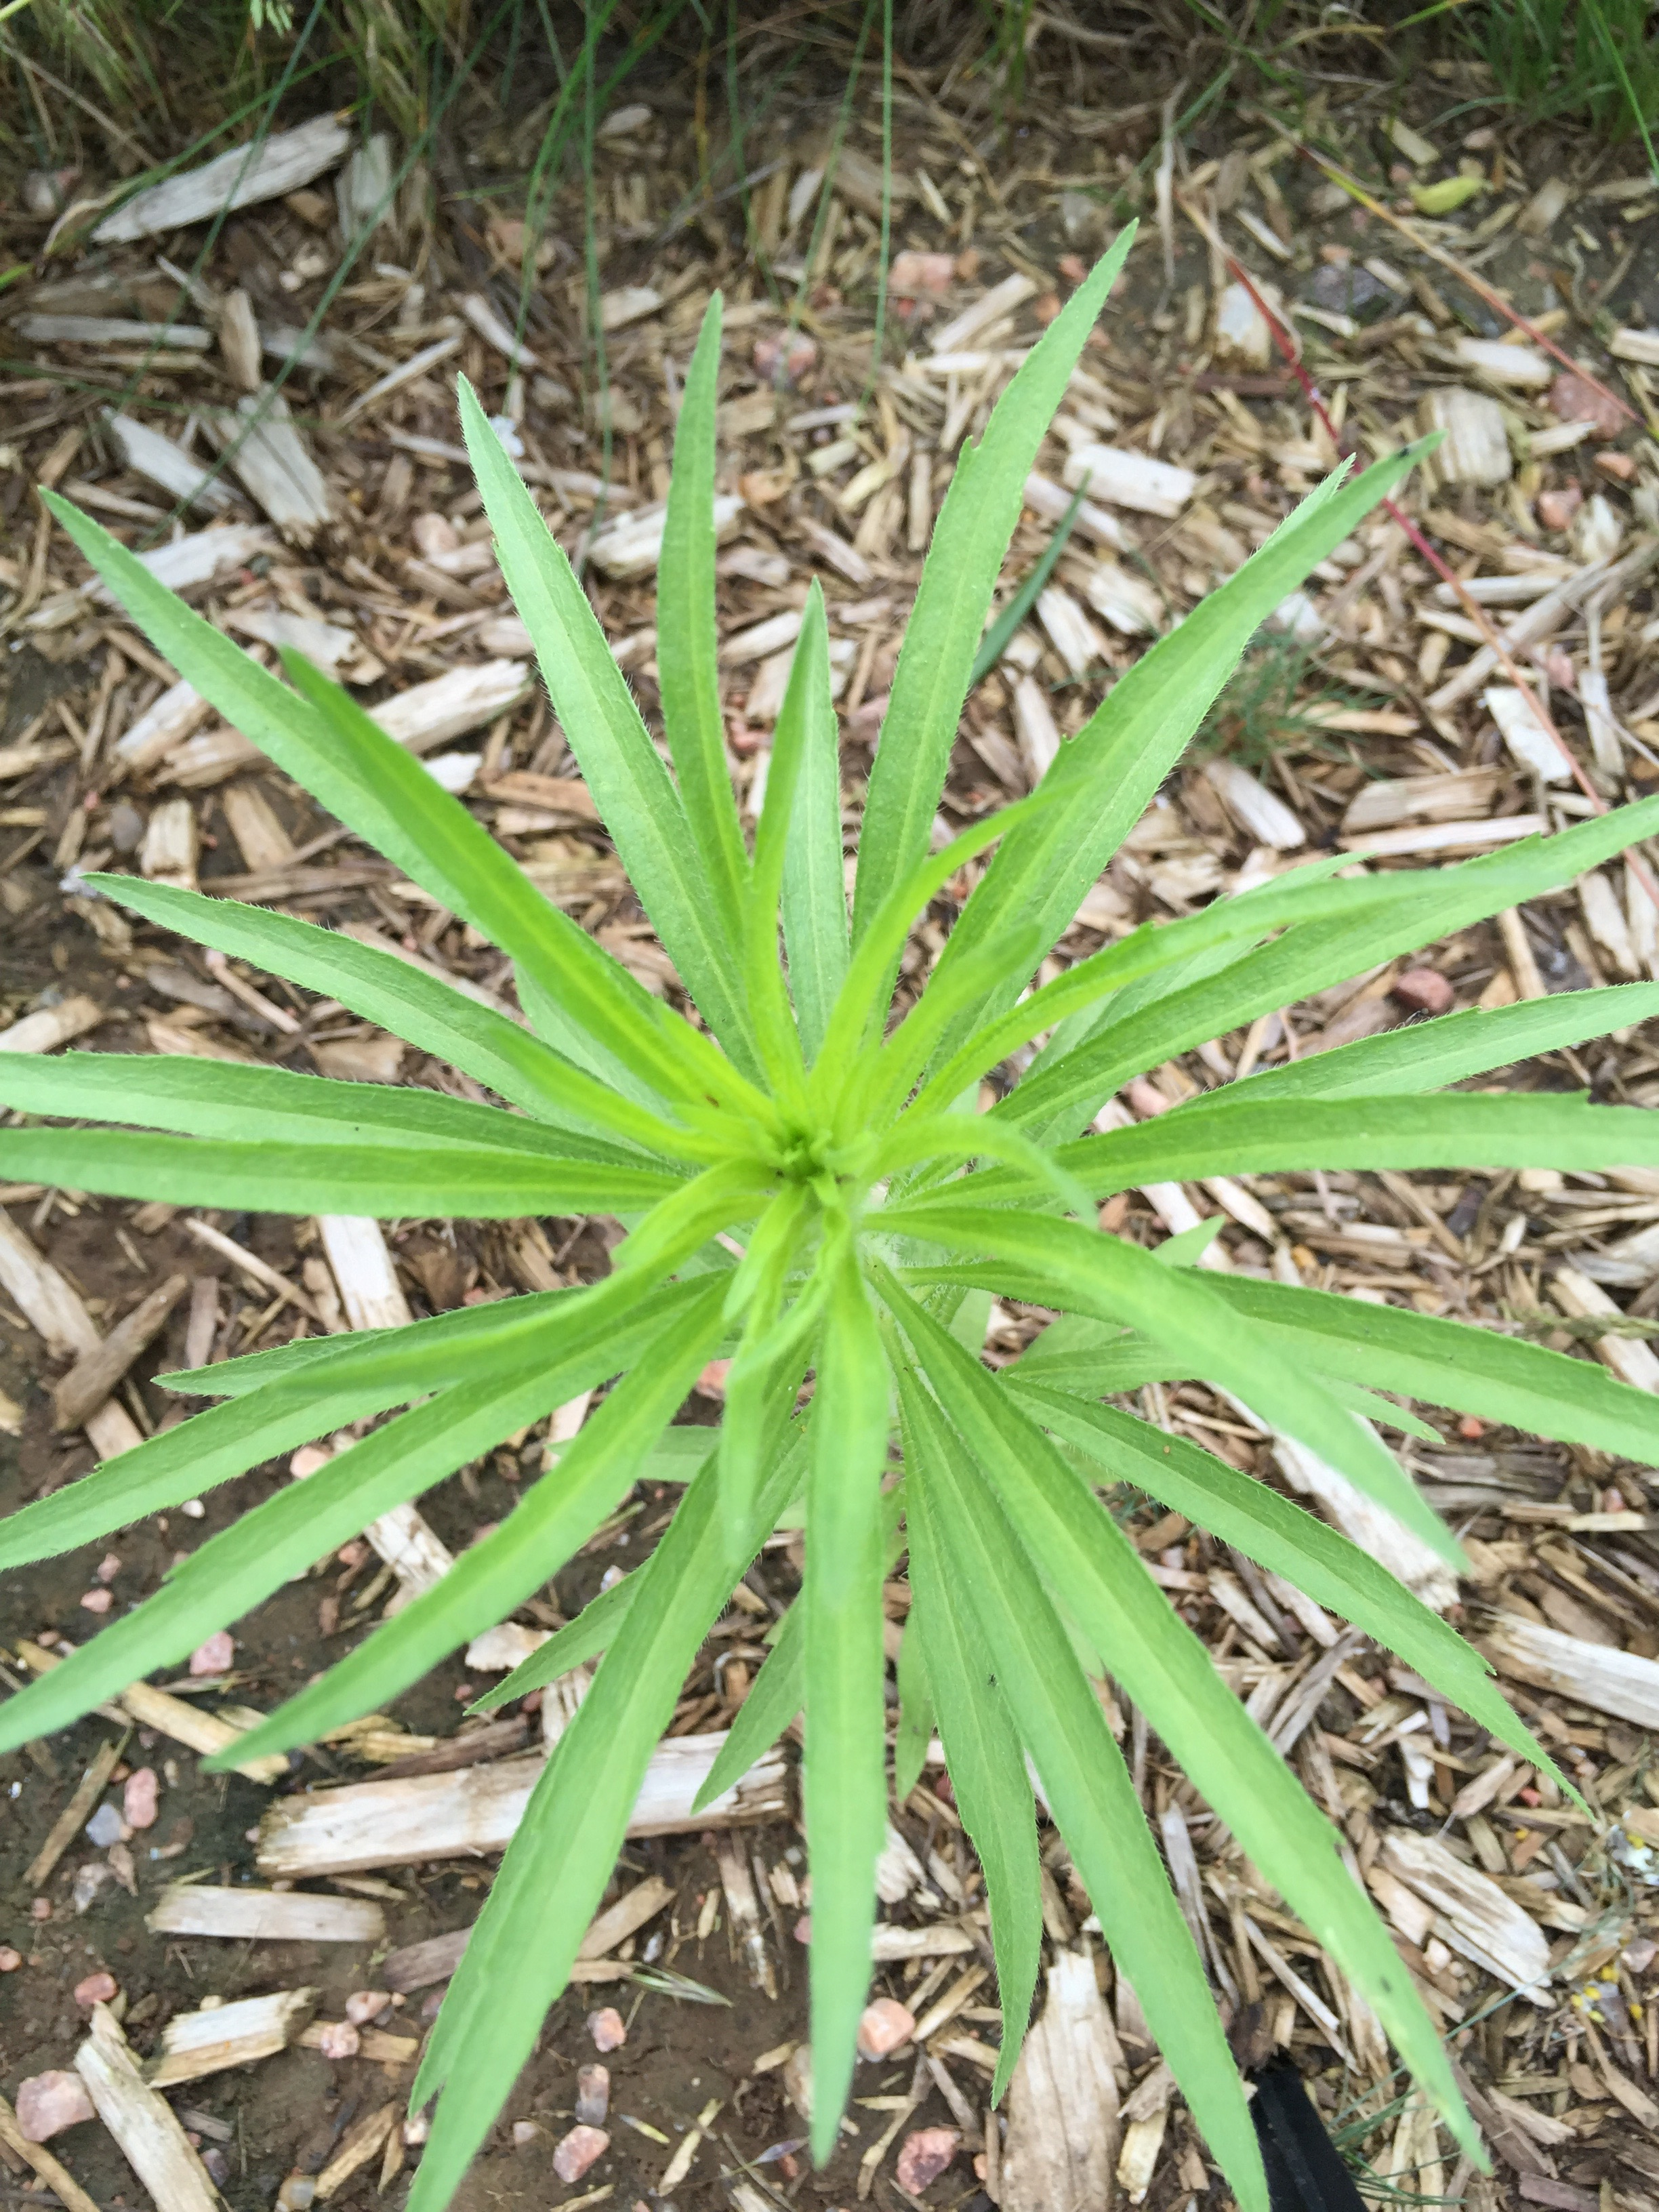 horseweed_marestail_winter_annual_yard_grass_ecoturf